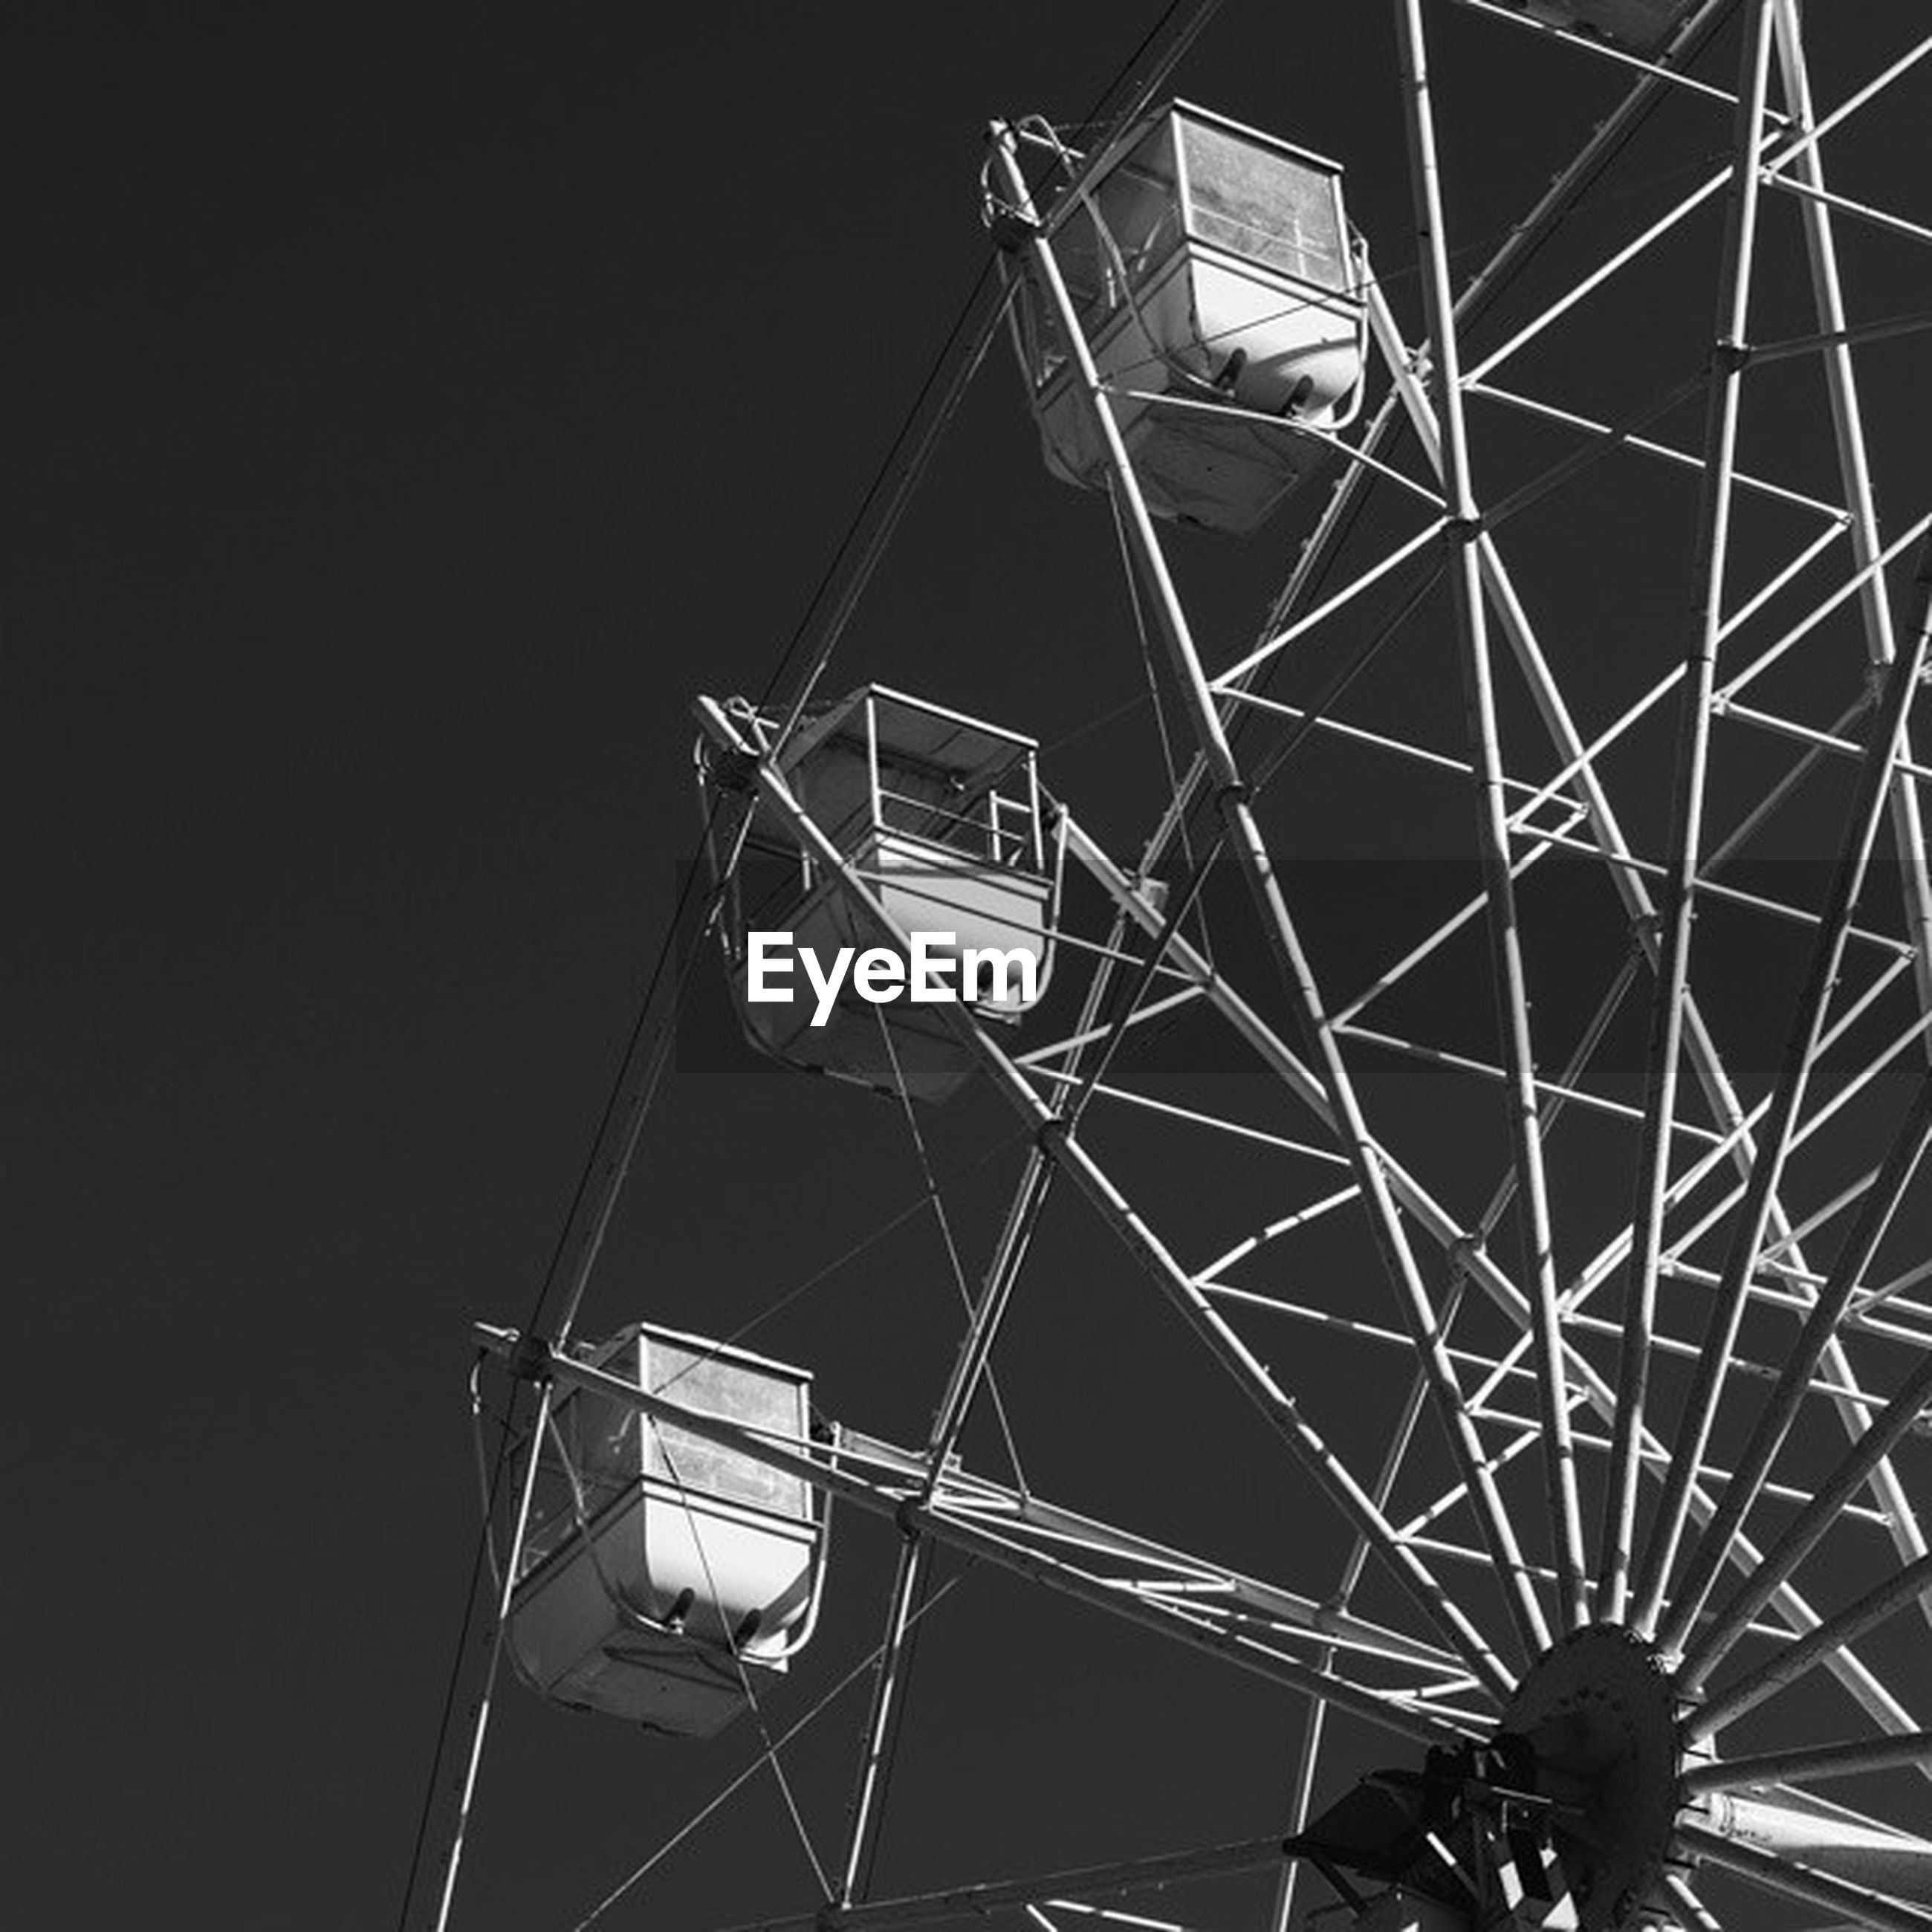 low angle view, metal, amusement park ride, ferris wheel, amusement park, arts culture and entertainment, metallic, built structure, pattern, architecture, geometric shape, no people, clear sky, directly below, day, sky, outdoors, fuel and power generation